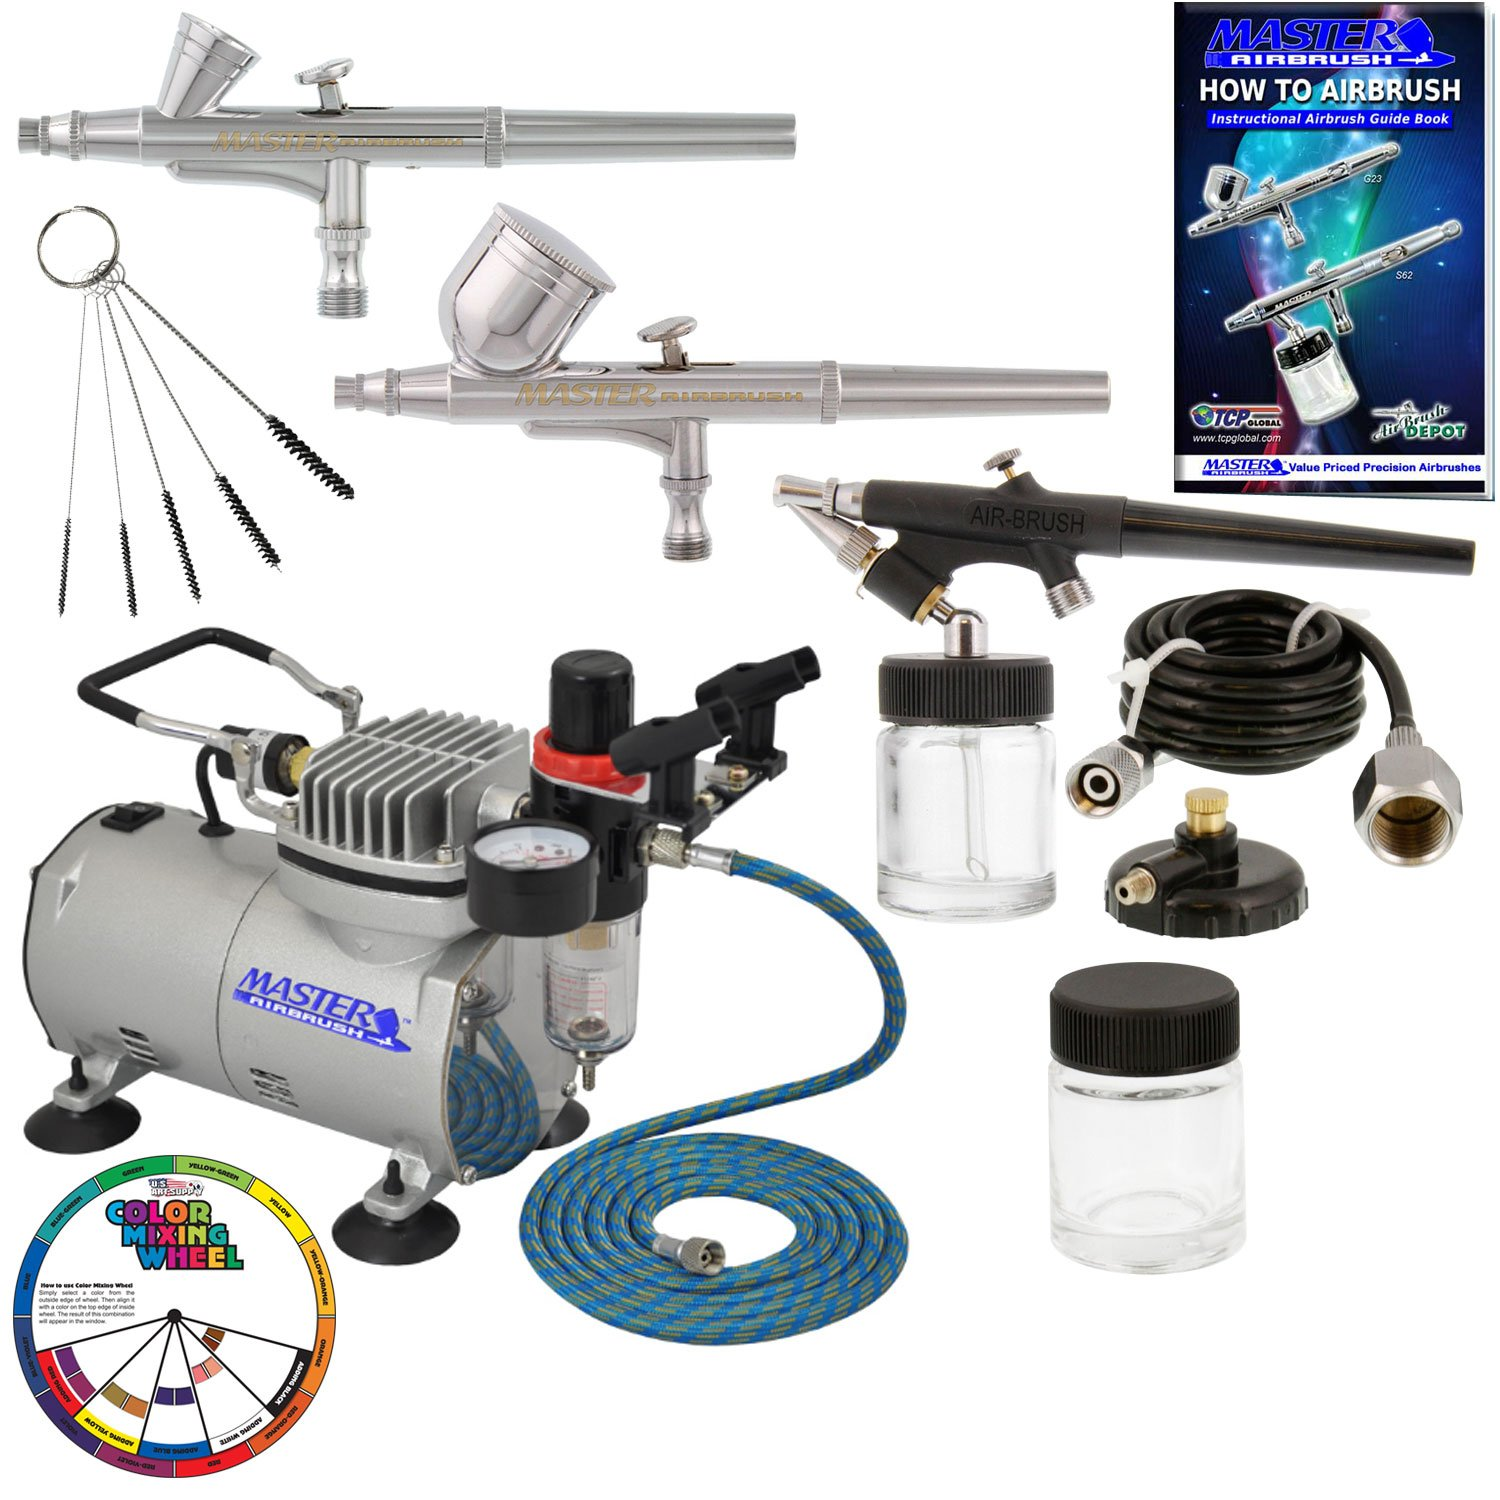 3 Master Airbrush Professional Airbrushing System Kit - Multi-Purpose G22, G25, E91 Gravity & Siphon Feed Airbrushes, Air Compressor, Holder, Color Mixing Wheel, Cleaning Brushes, How-To Guide Booklet by Master Airbrush (Image #7)